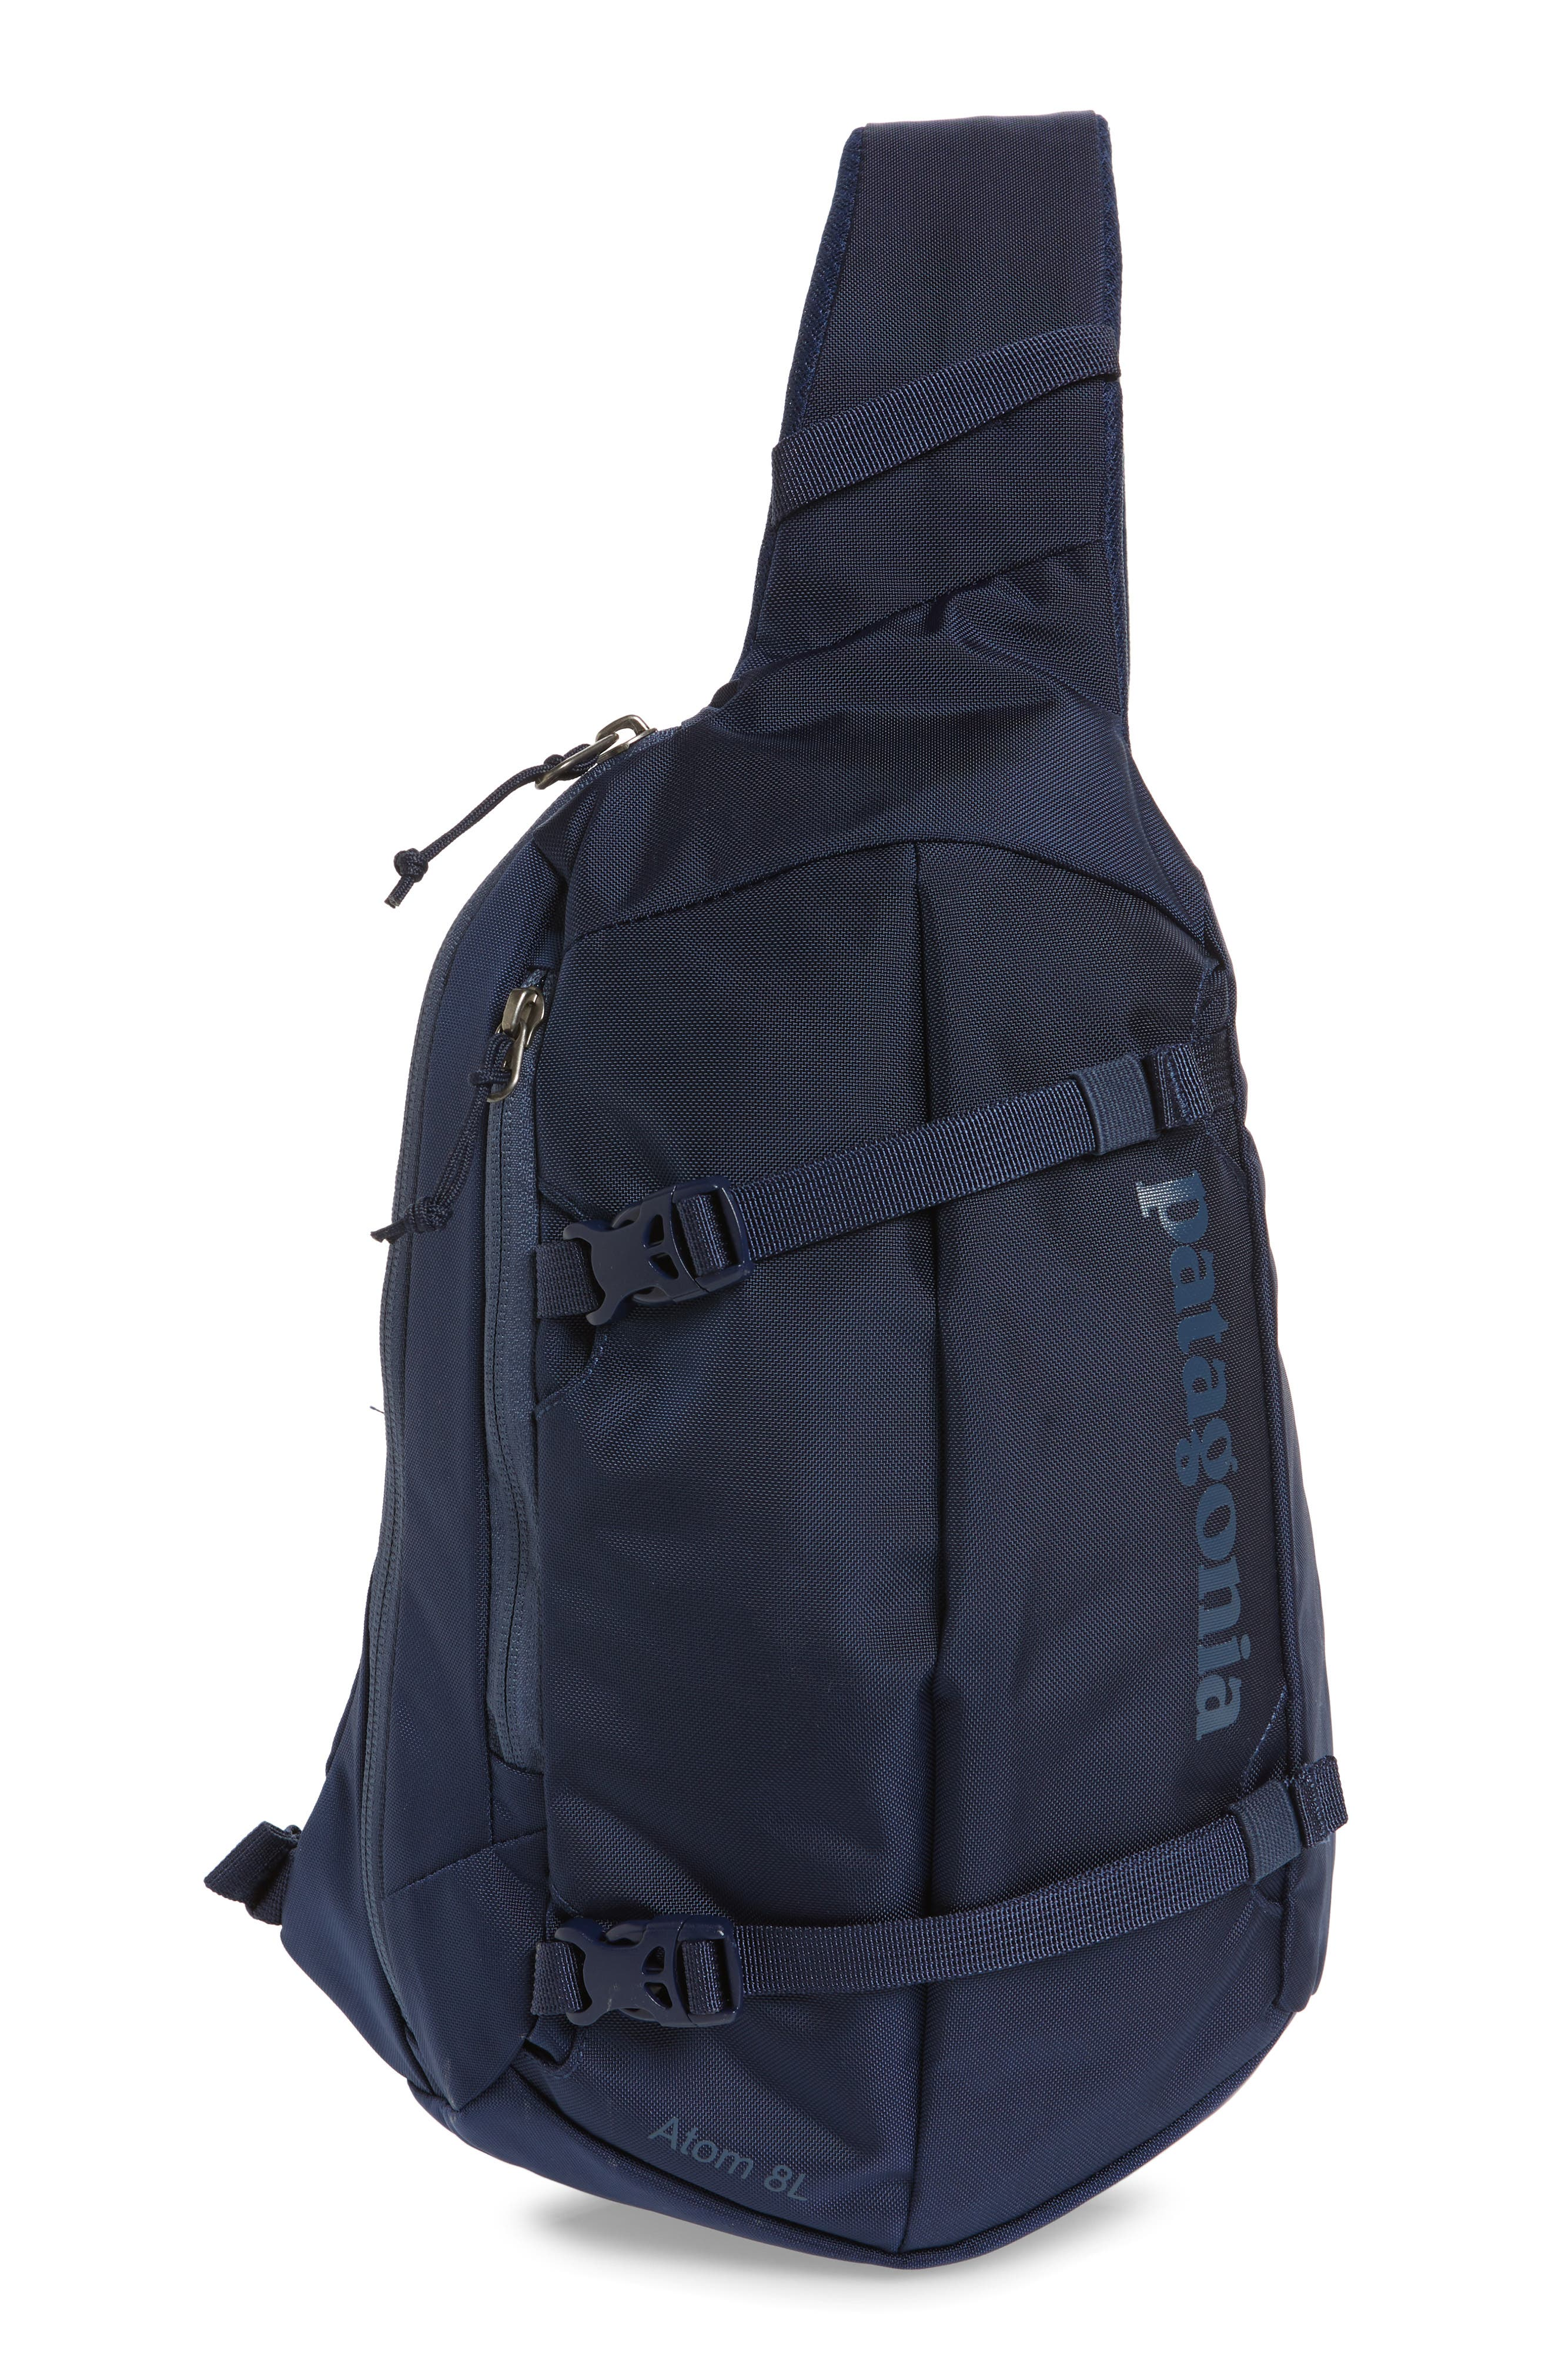 PATAGONIA, Atom 8L Sling Backpack, Main thumbnail 1, color, CLASSIC NAVY W/ NAVY